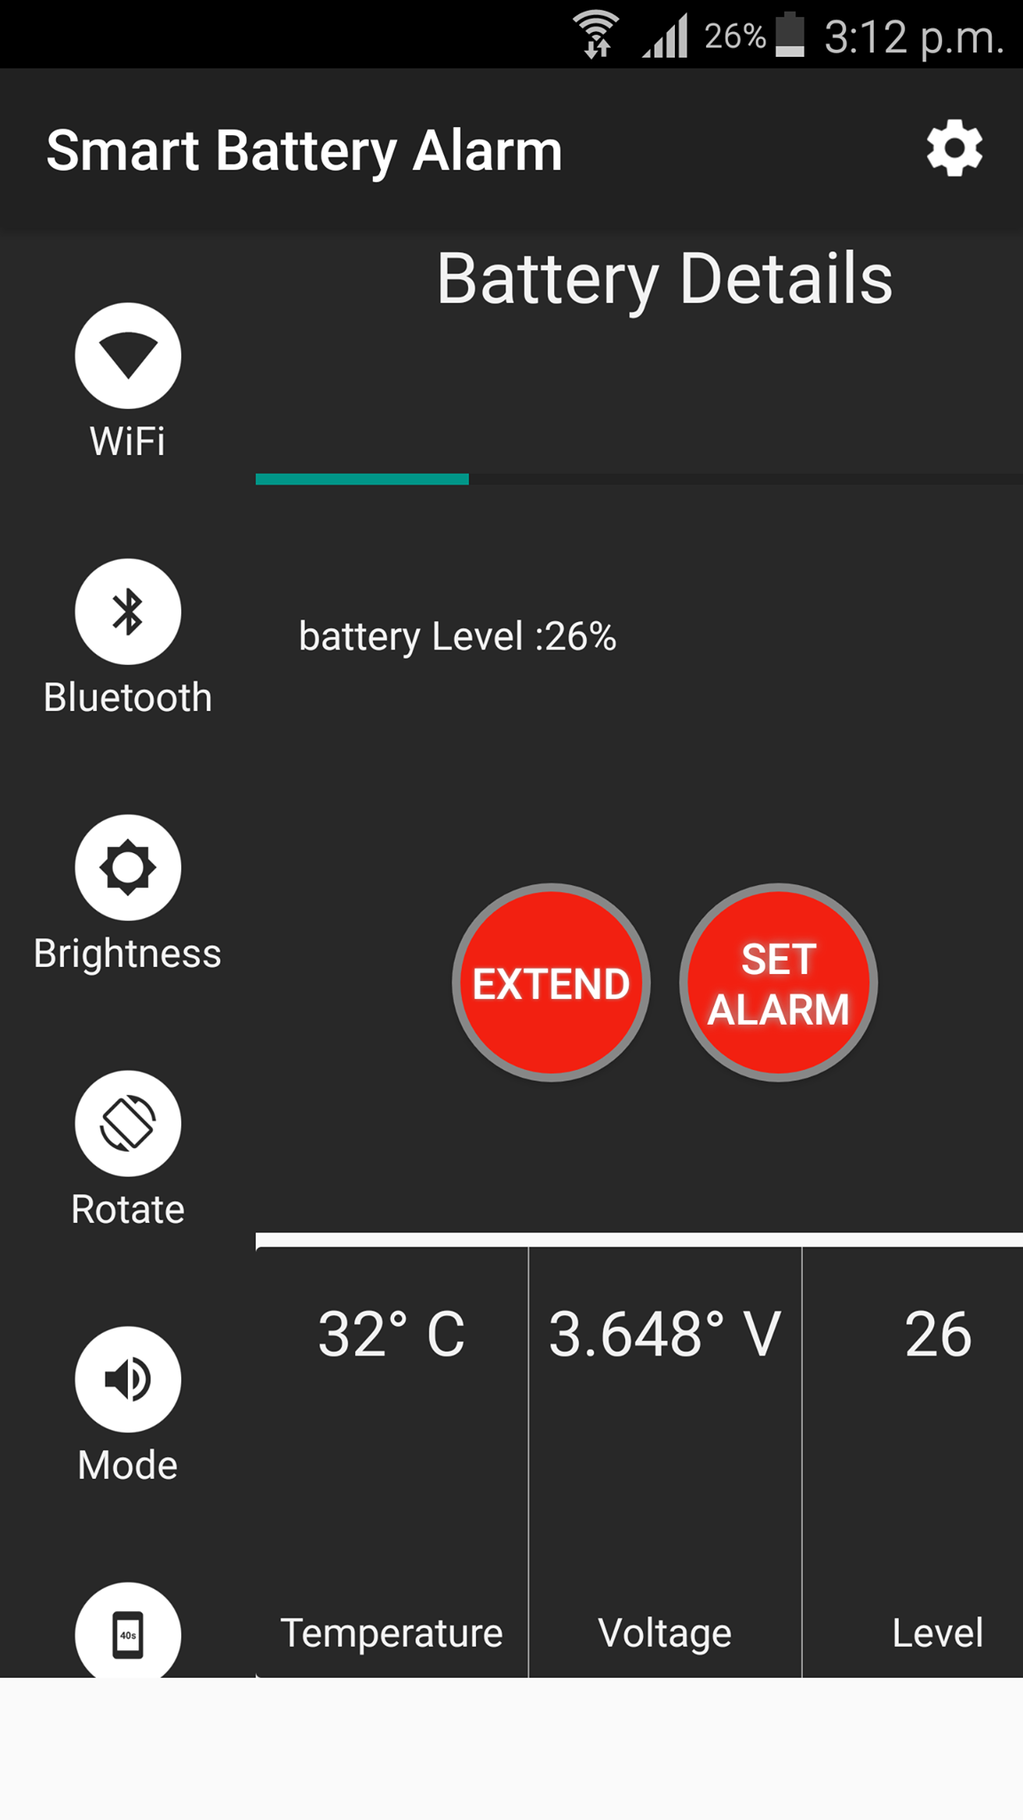 Smart Battery Charger Alarm Screenshot 1